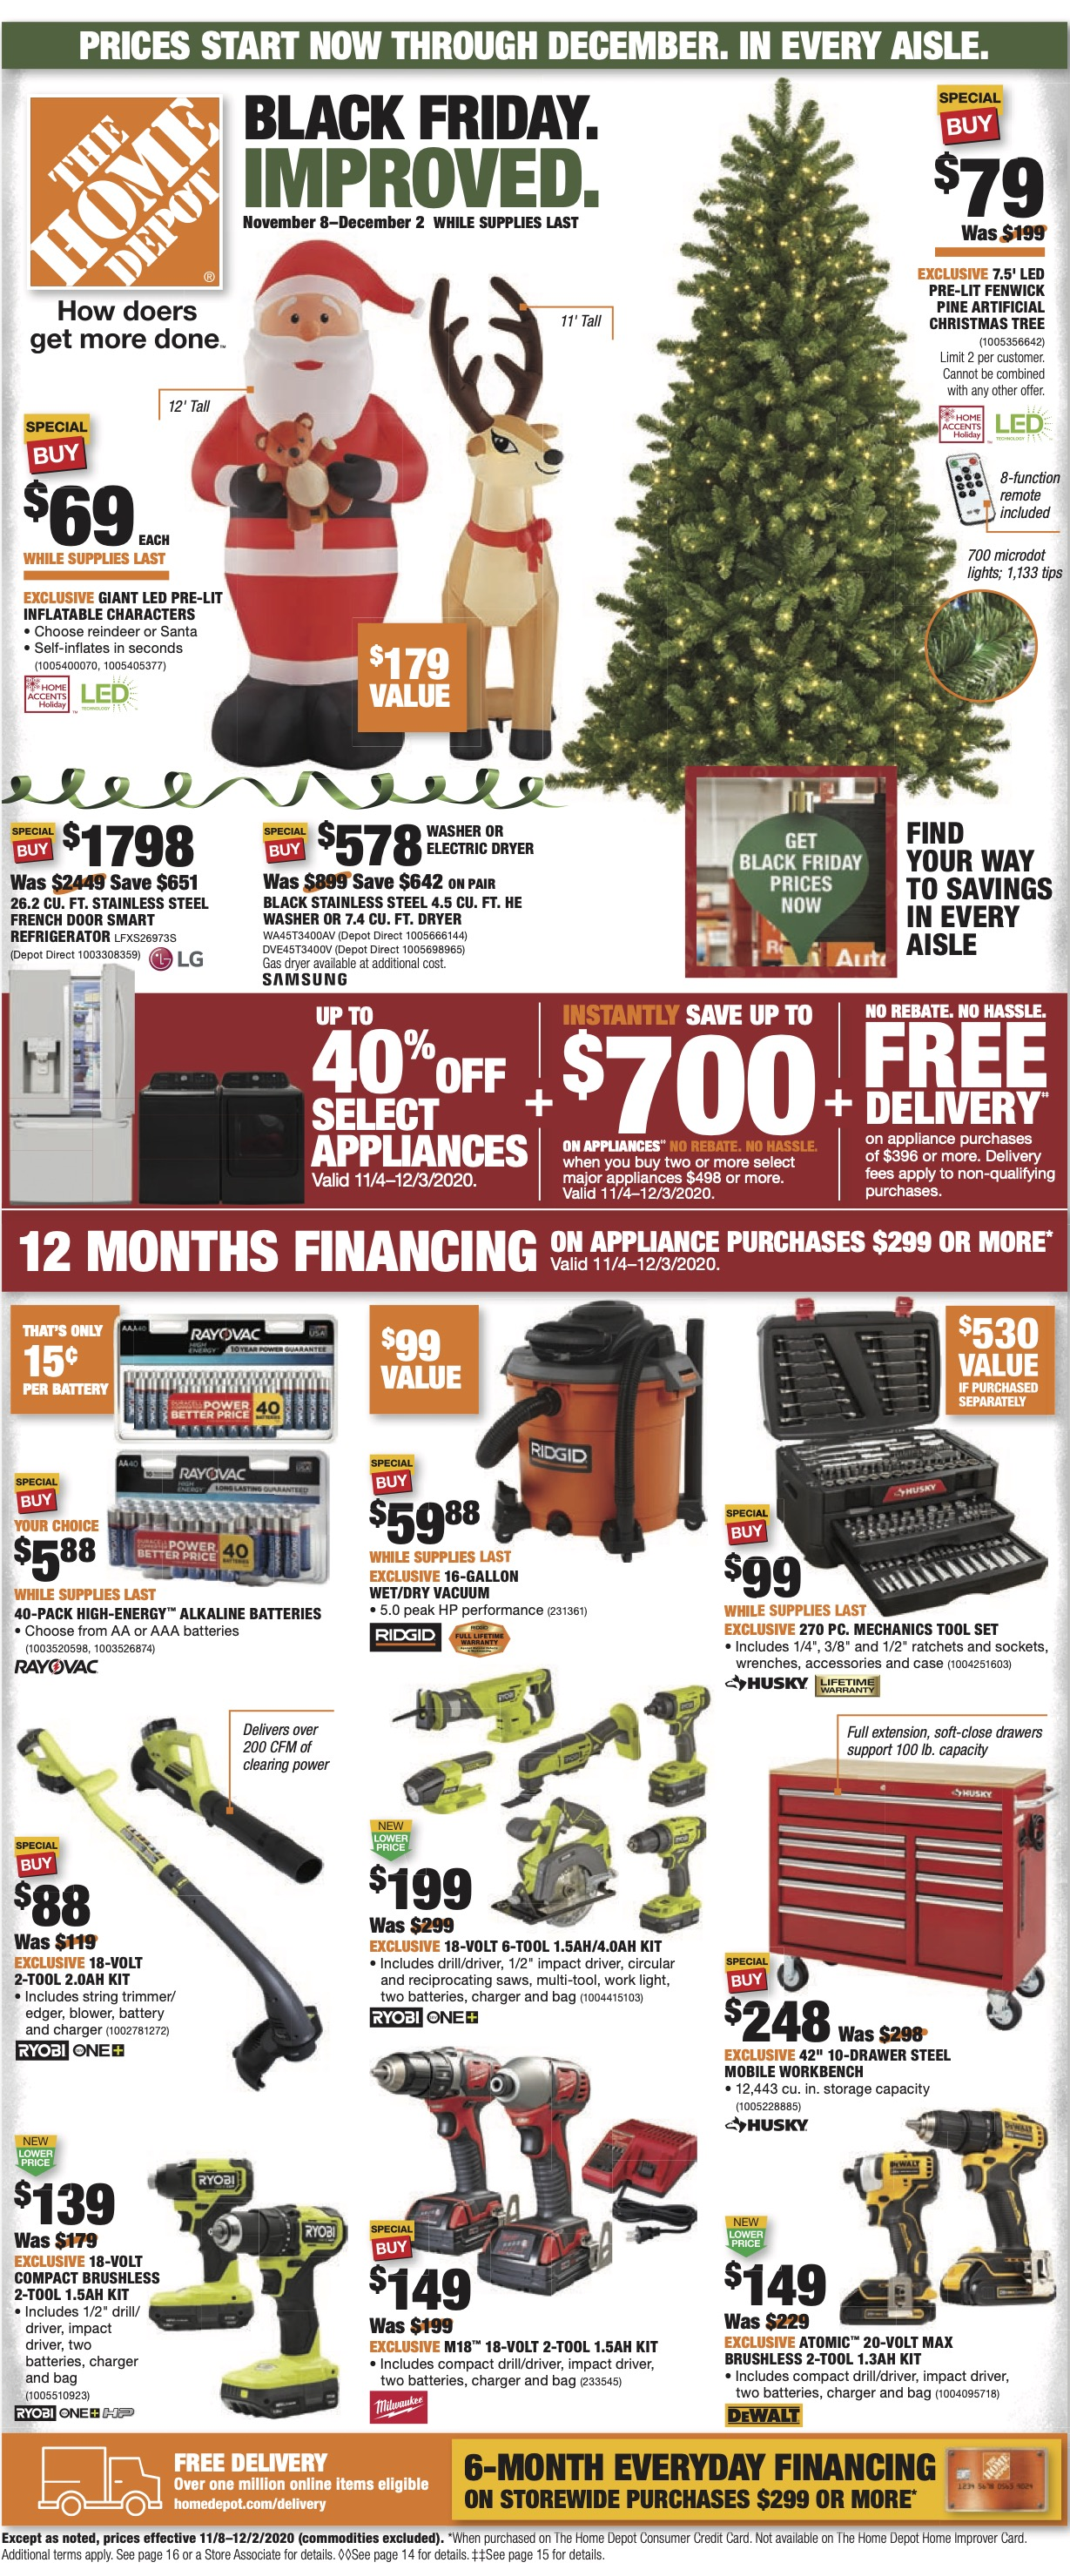 Home Depot Black Friday Improved 2020